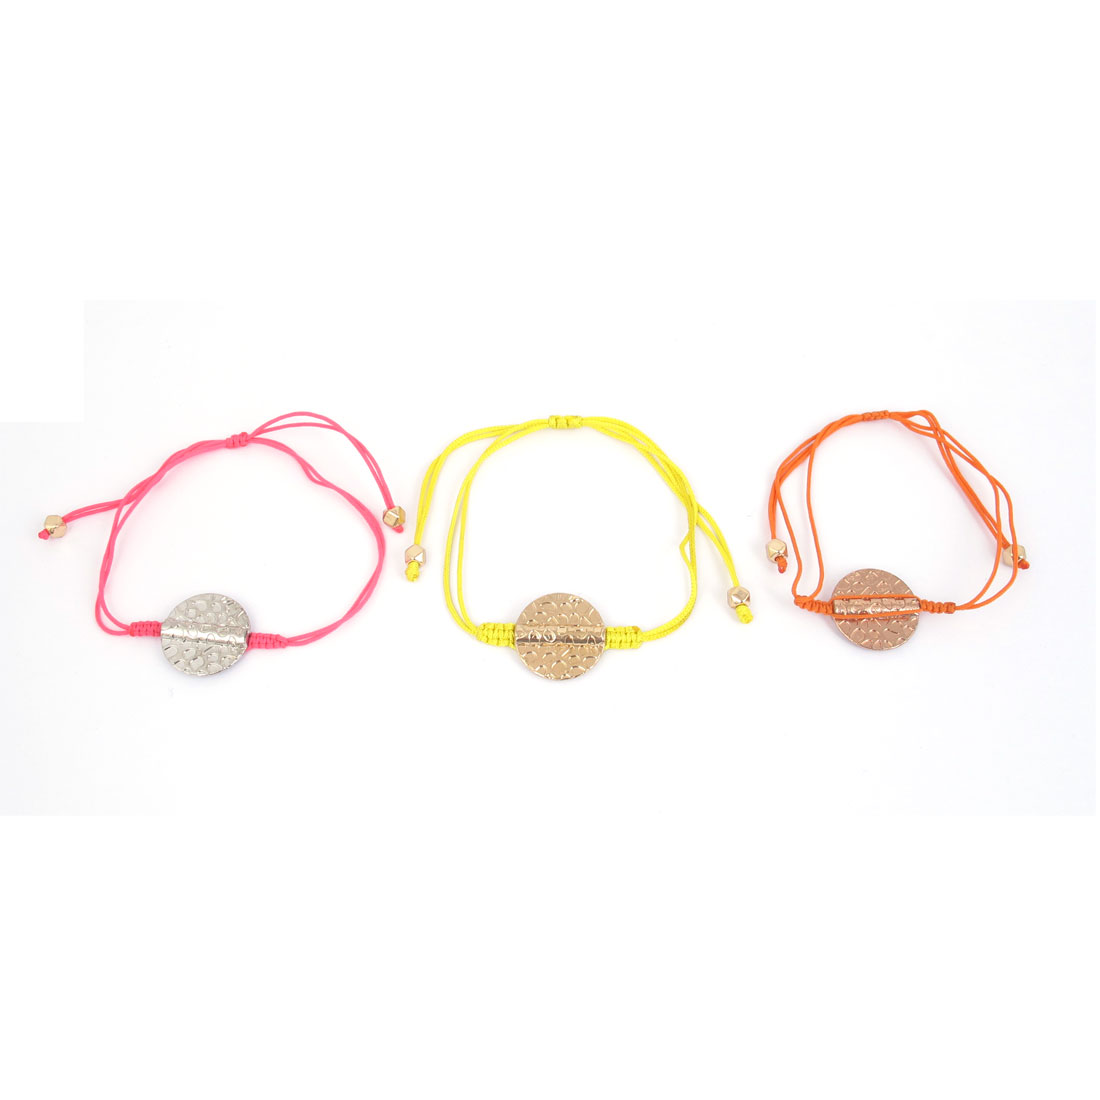 Girls Ladies Nylon String Hand Knitting Fibre Braid Wristband Round Circle Decor Bracelet Orange Pink Yellow 3 Pcs